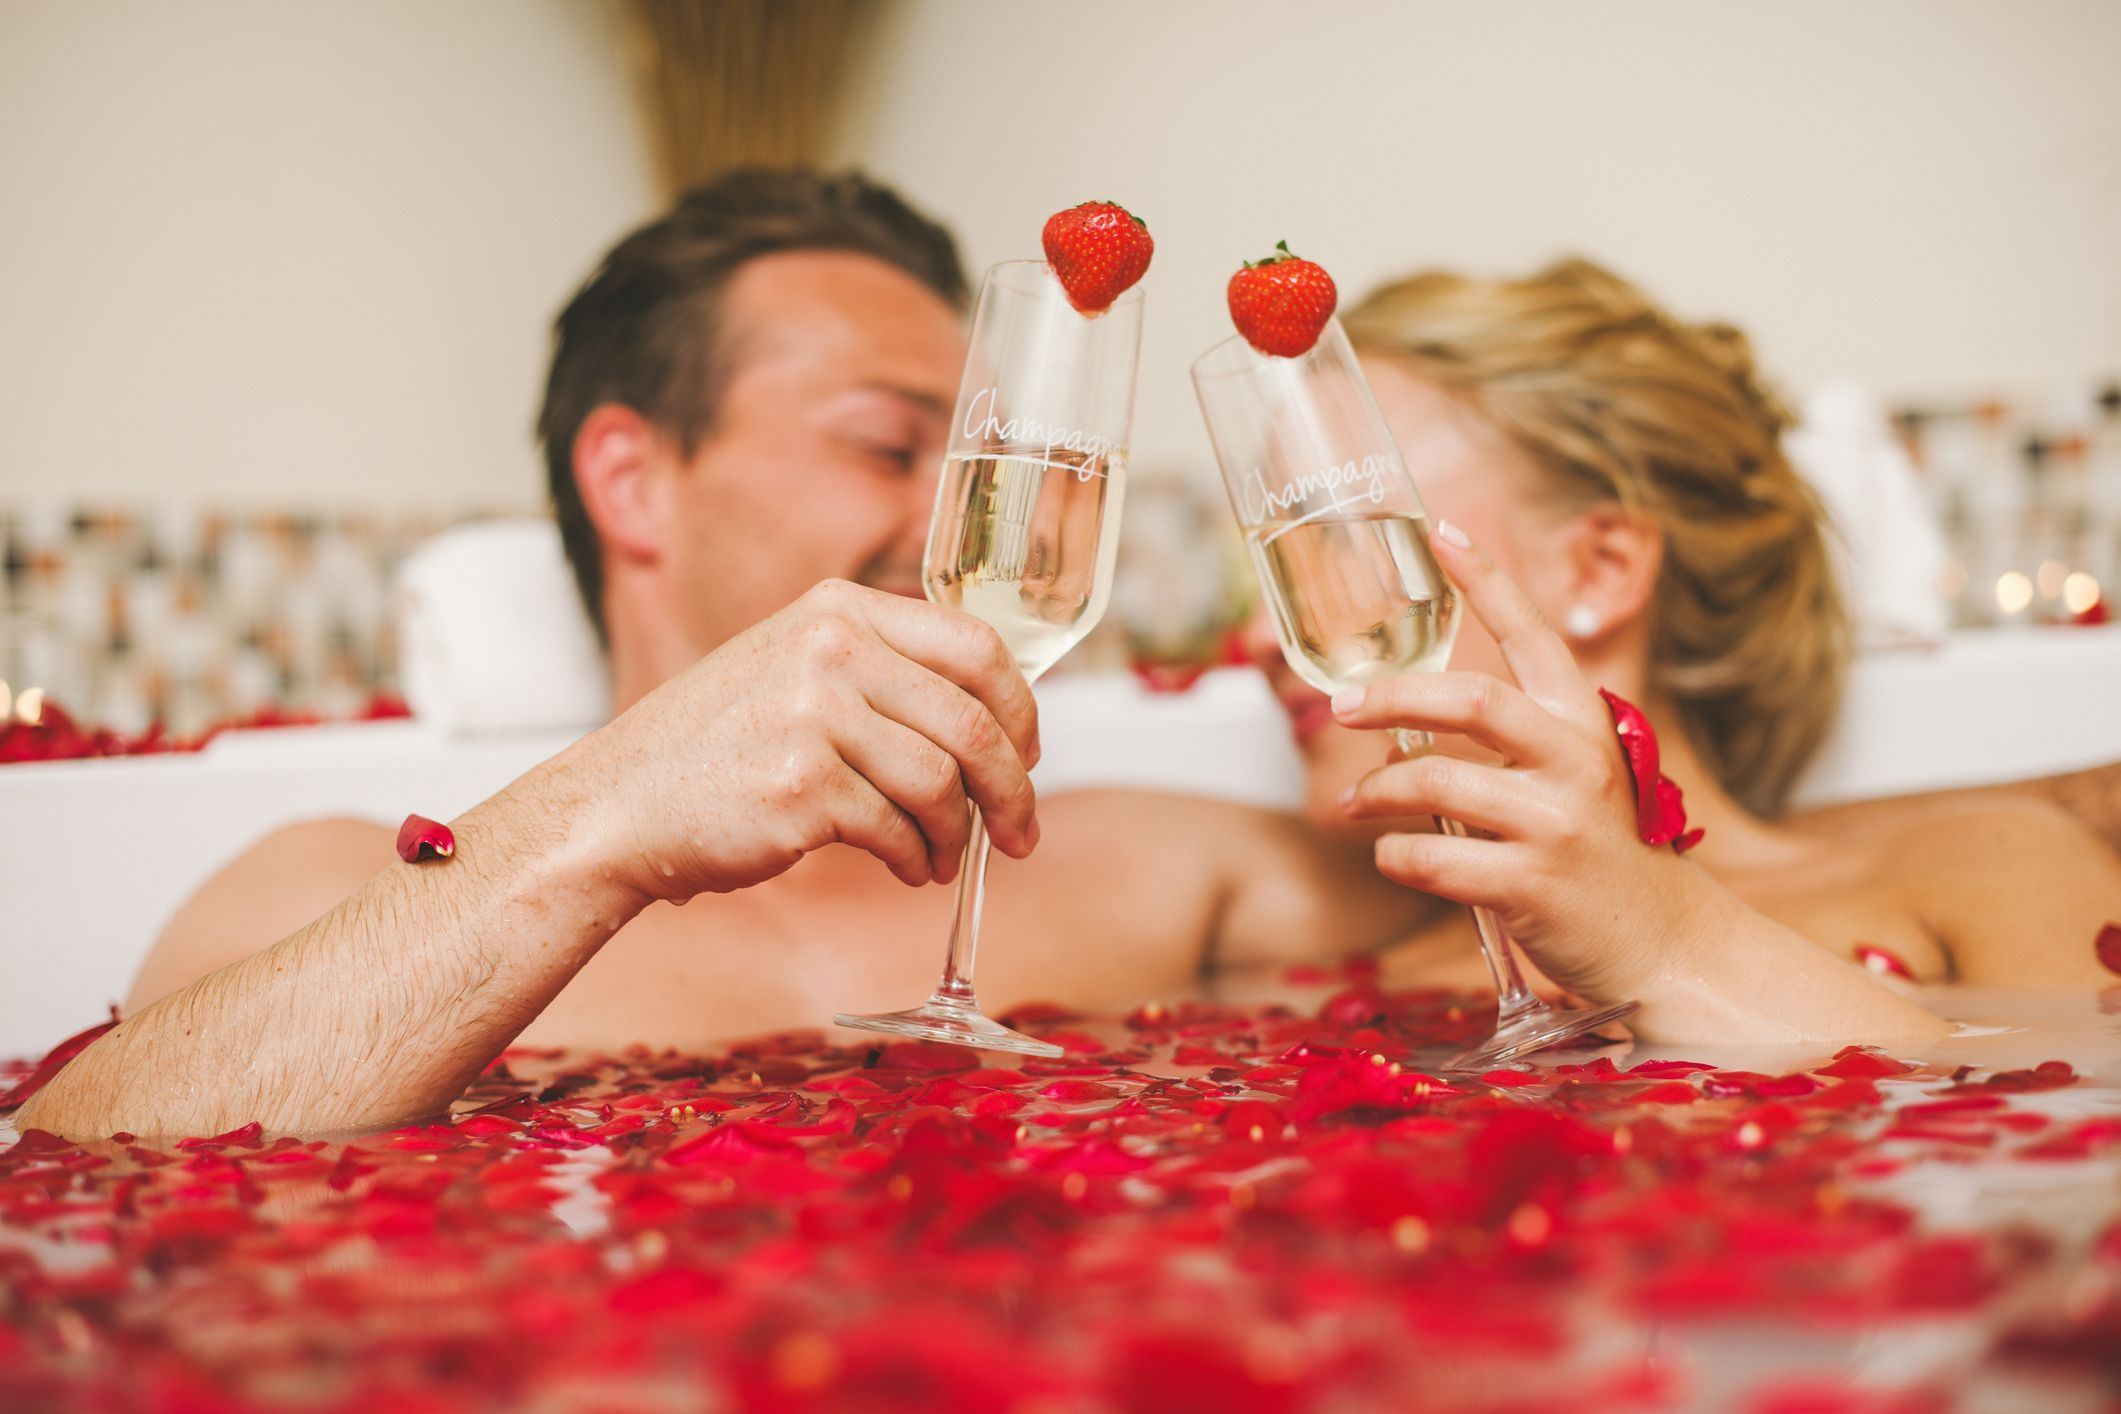 25 Best Things To Do On Valentine S Day 2021 Fun Valentine S Day Activities